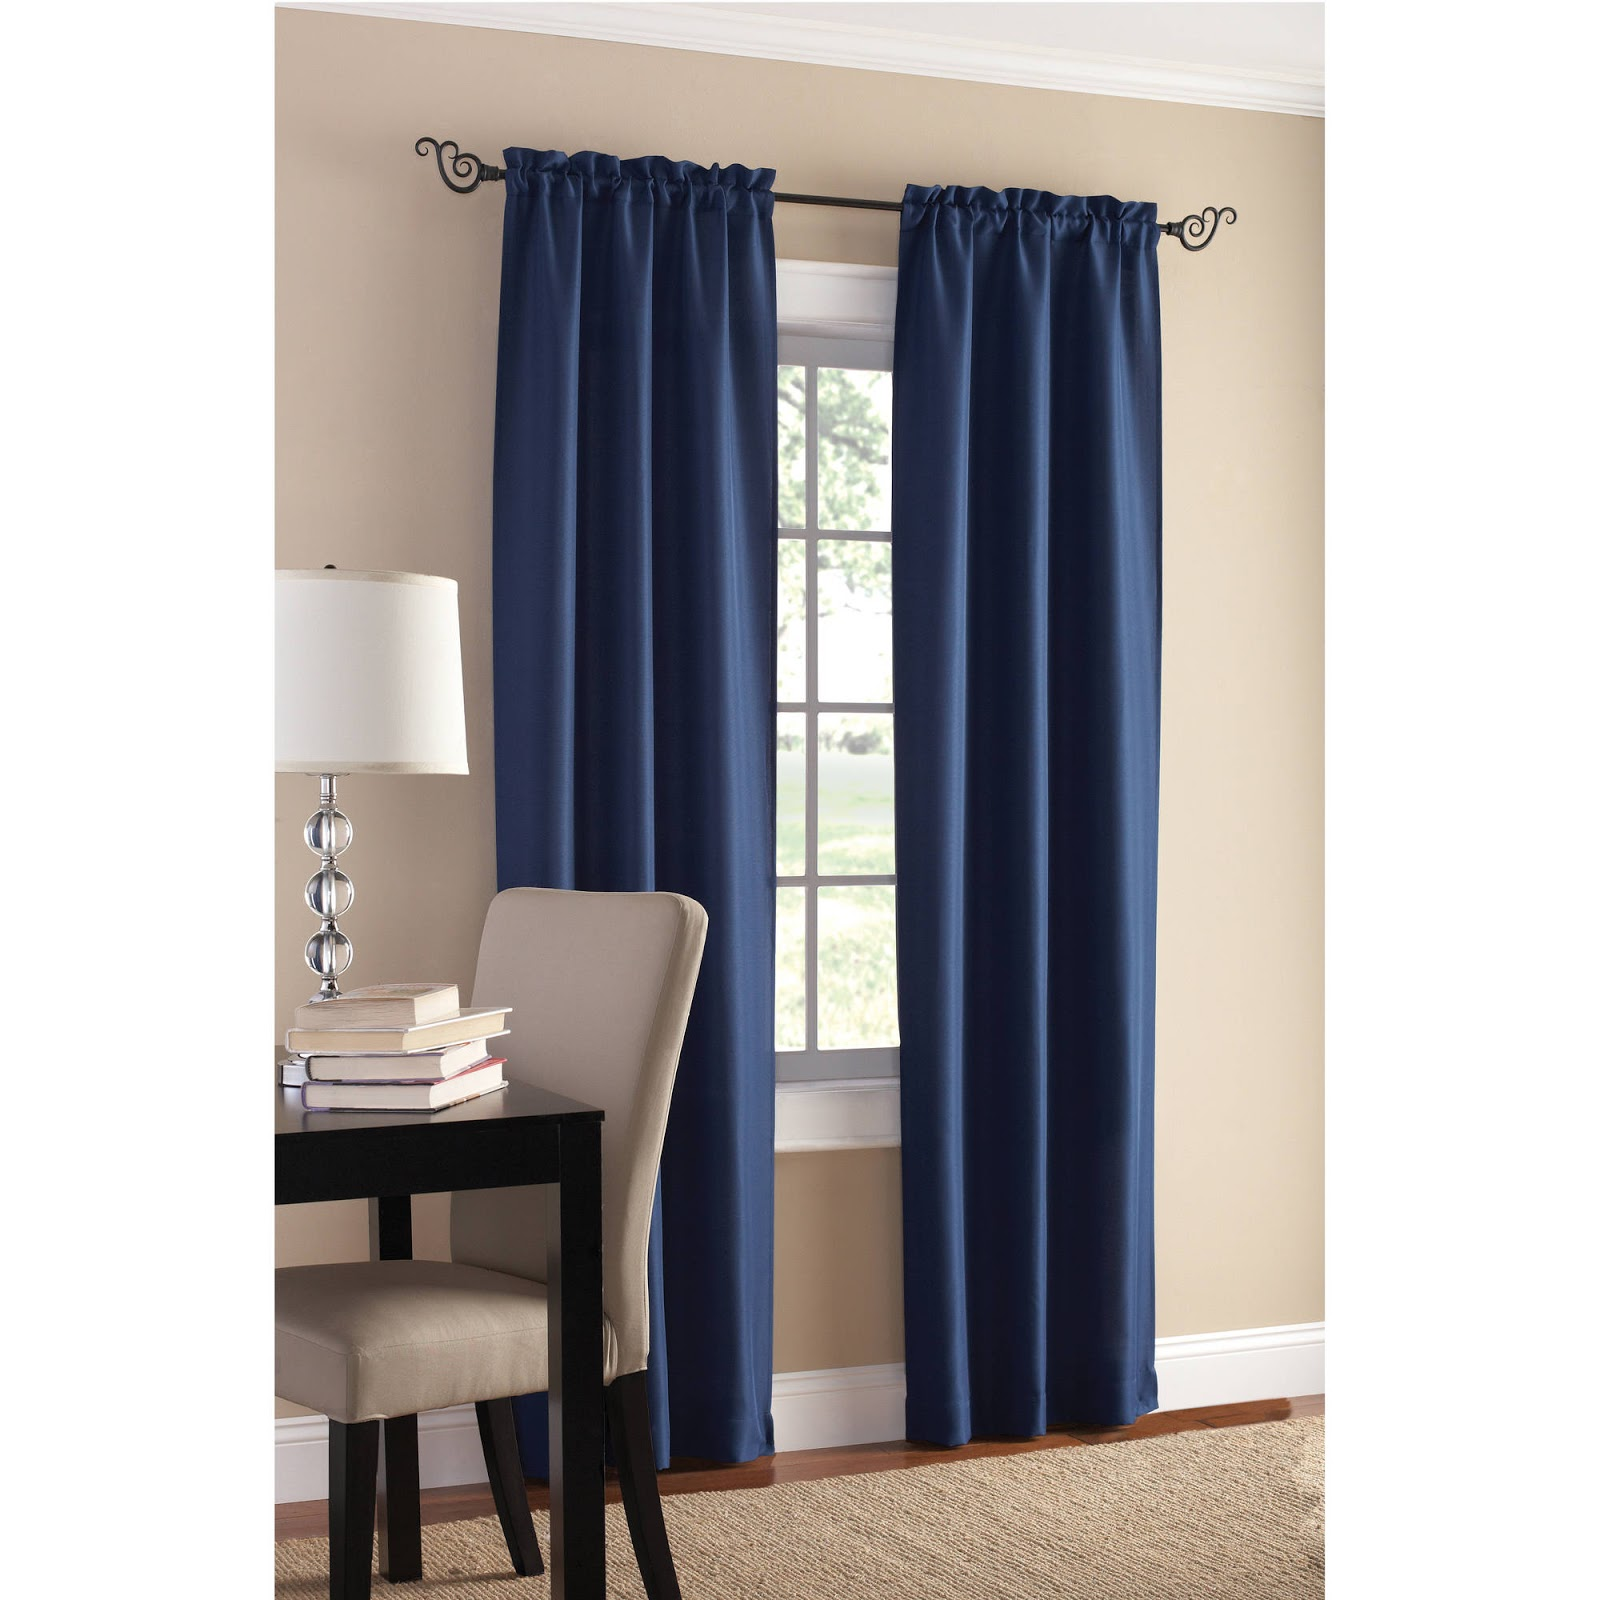 Hanging Screen Door Curtain Sheer Curtains With Drapes Sheers Behind Shower